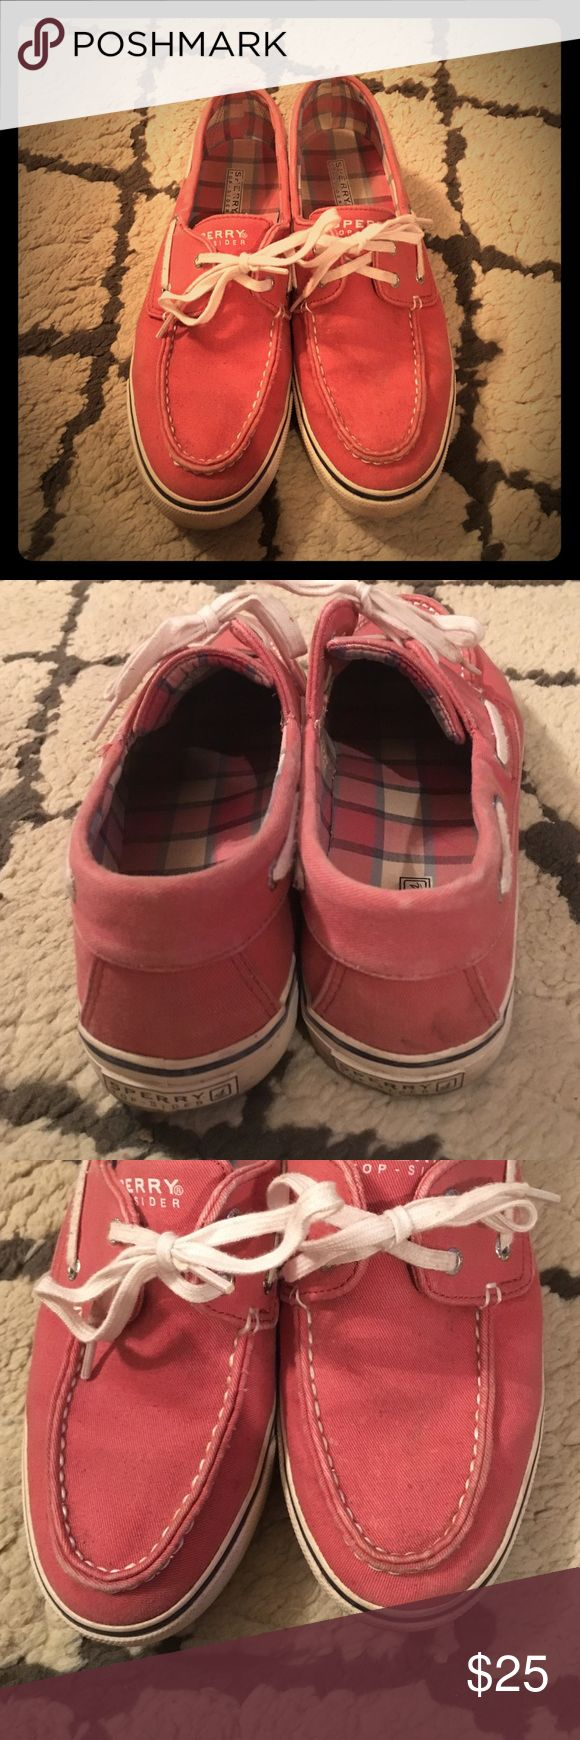 Sperry canvas bait shoe! Canvas salmon color Sperry boat shoe. Has some signs of wear pictured in the second and third photo. Probably could be wiped off but I'm trying to clean out my closet! Sperry Top-Sider Shoes Flats & Loafers